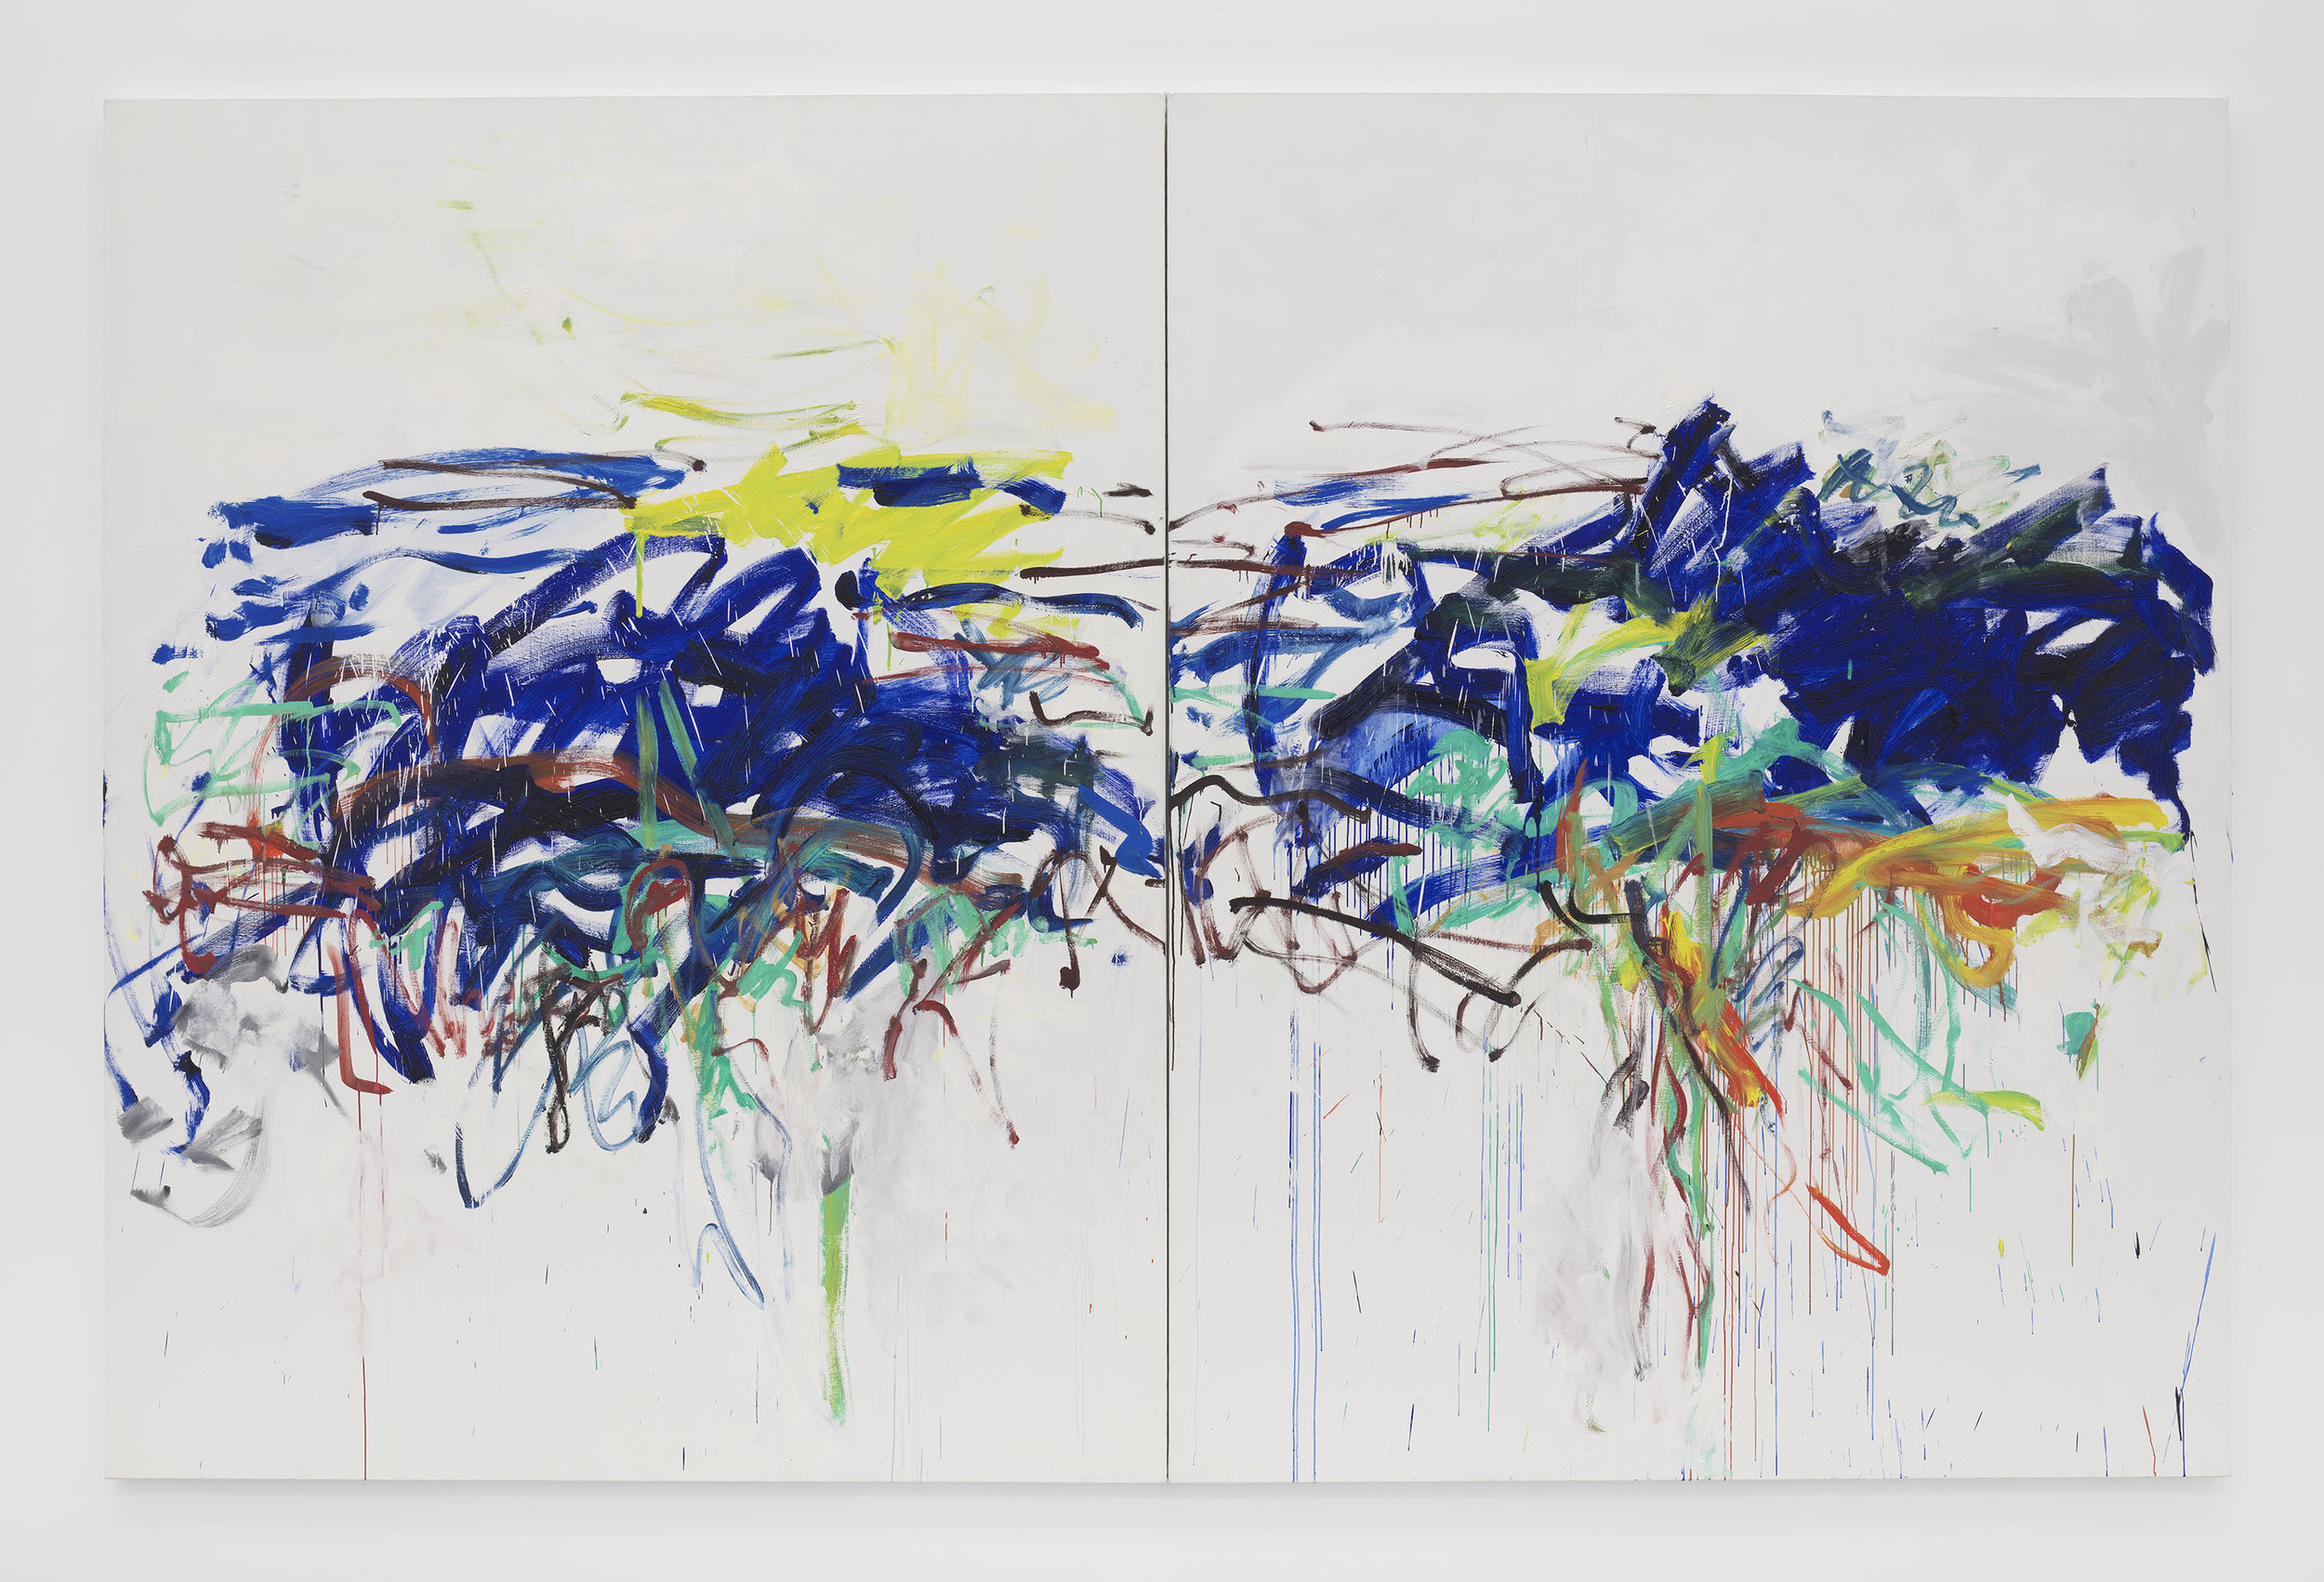 Joan Mitchell ,  Untitled , 1992, Oil on canvas in two (2) parts, 102 3/8 x 157 3/4 inches, 260 x 400.7 cm